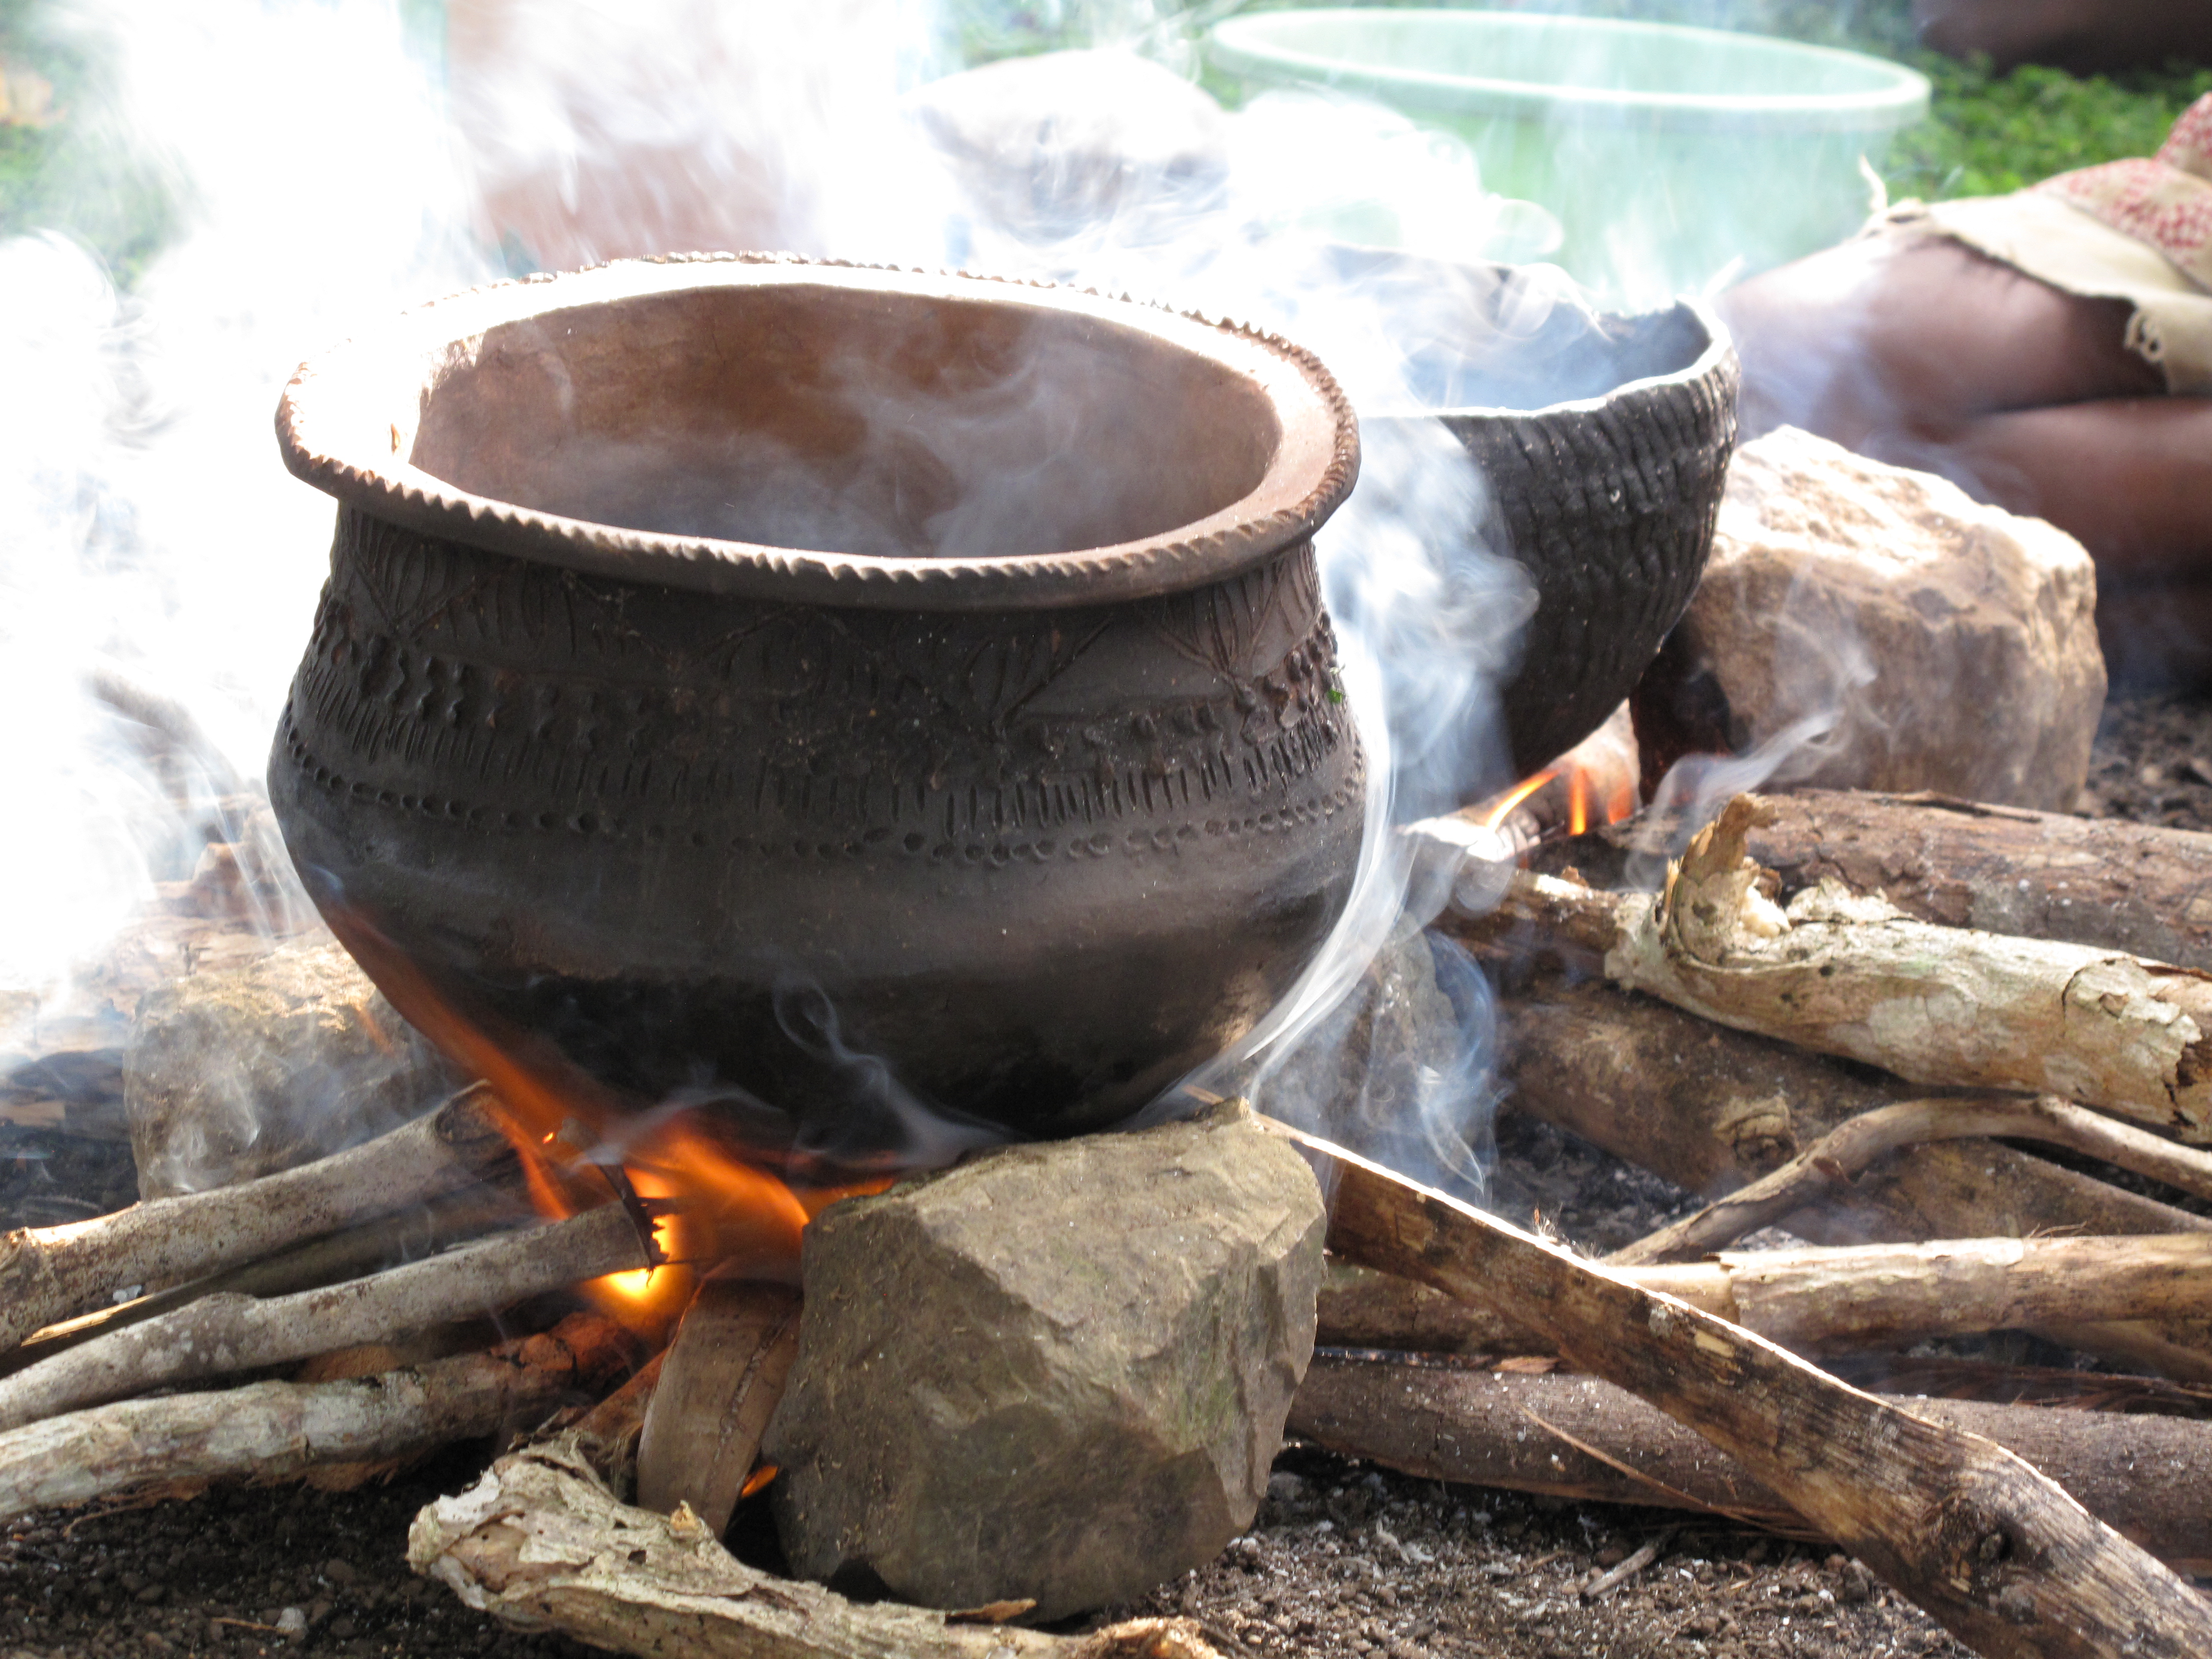 Traditional clay pot used for cooking in the past.